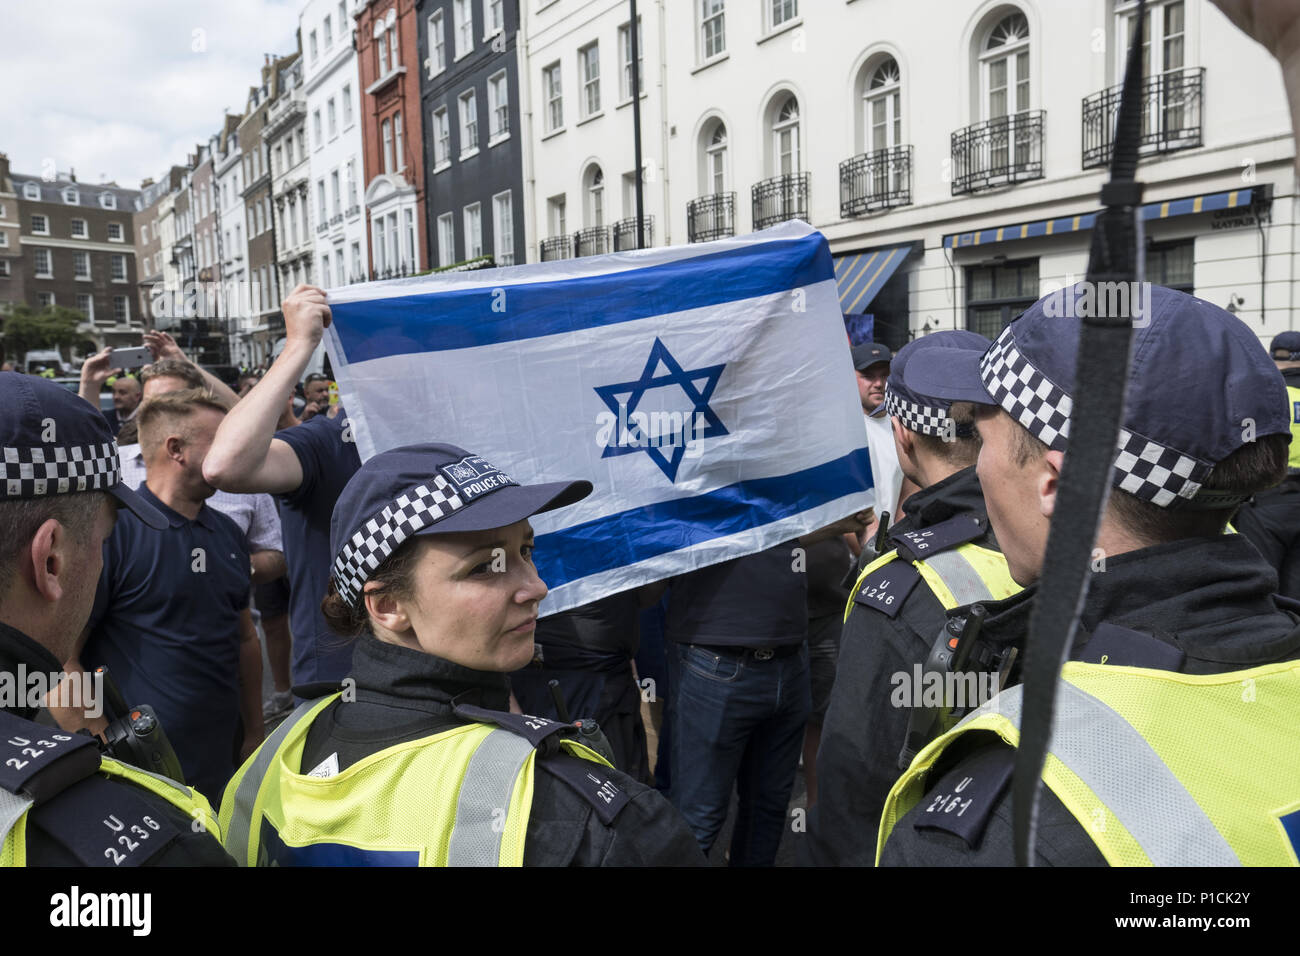 London, UK. 10th June, 2018. Opposition protesters hold an Israeli flag during the Al Quds Day rally.The Al Quds Day rally is an event which is supposed to highlight the plight of the Palestinian people and raise awareness of Islamic persecution around the world. The rally has caused controversy across the UK because speakers at the event openly call for the destruction of Israel and some participants wave the flag of Hezbollah, a proscribed terrorist group. Credit: Edward Crawford/SOPA Images/ZUMA Wire/Alamy Live News - Stock Image